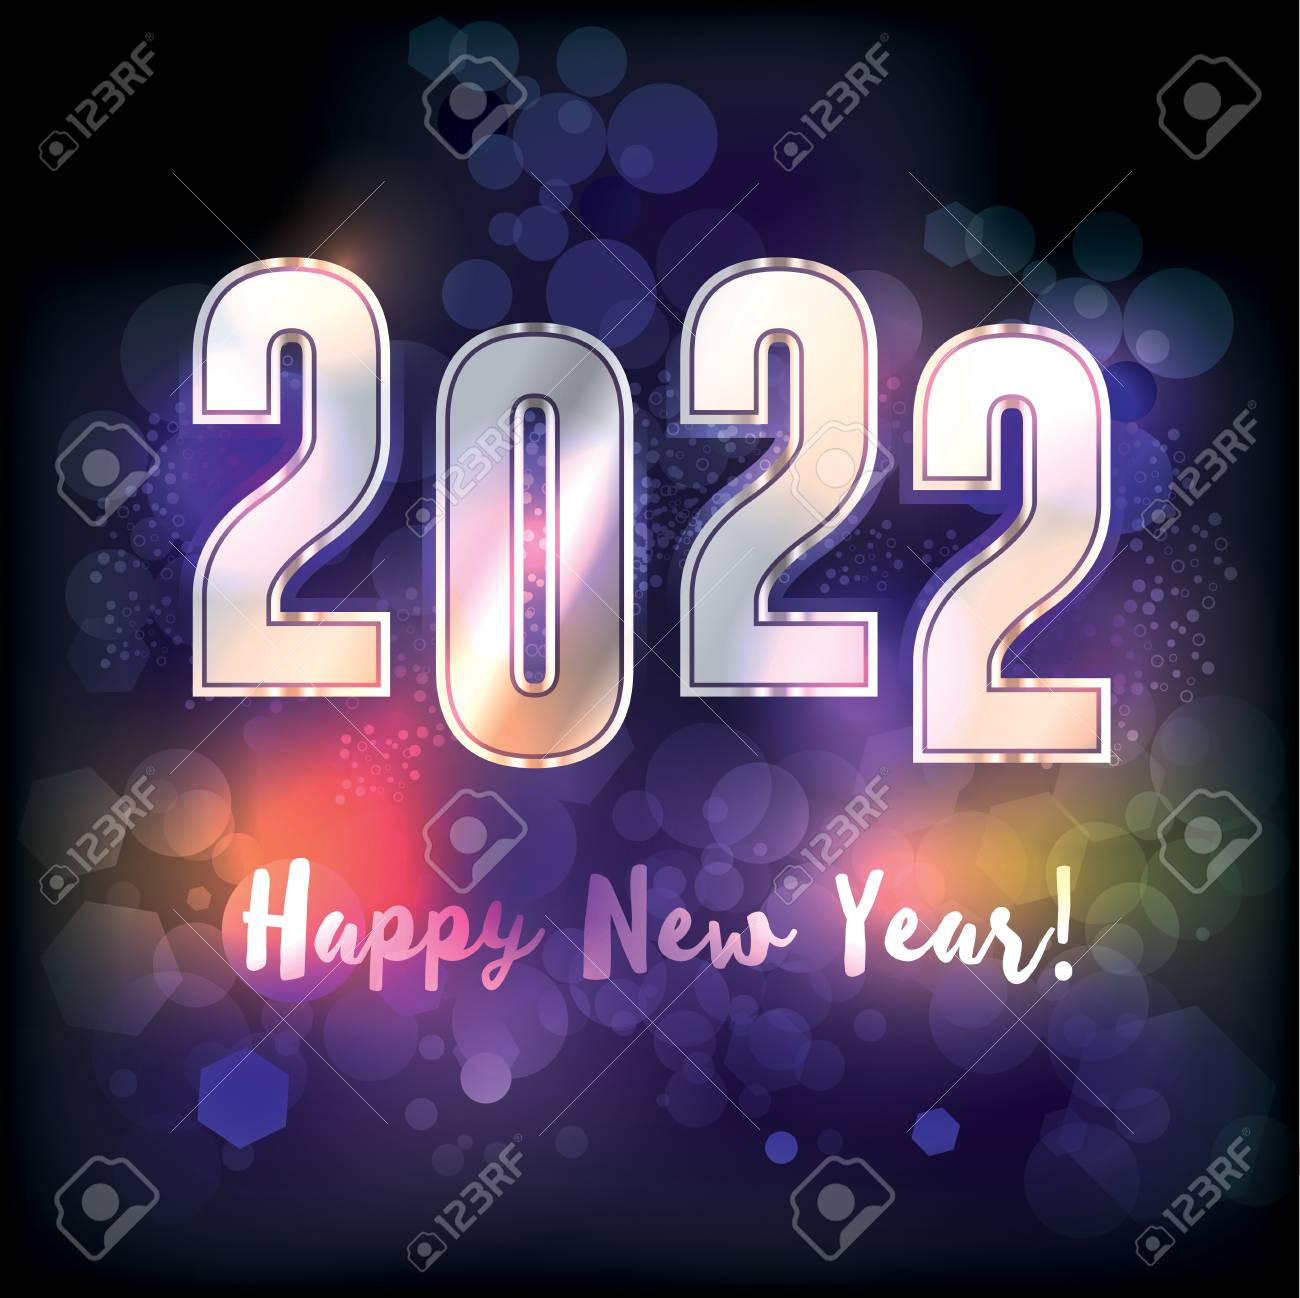 A Happy New Year 2022 New Year\'s Message Illustration. Vector ...